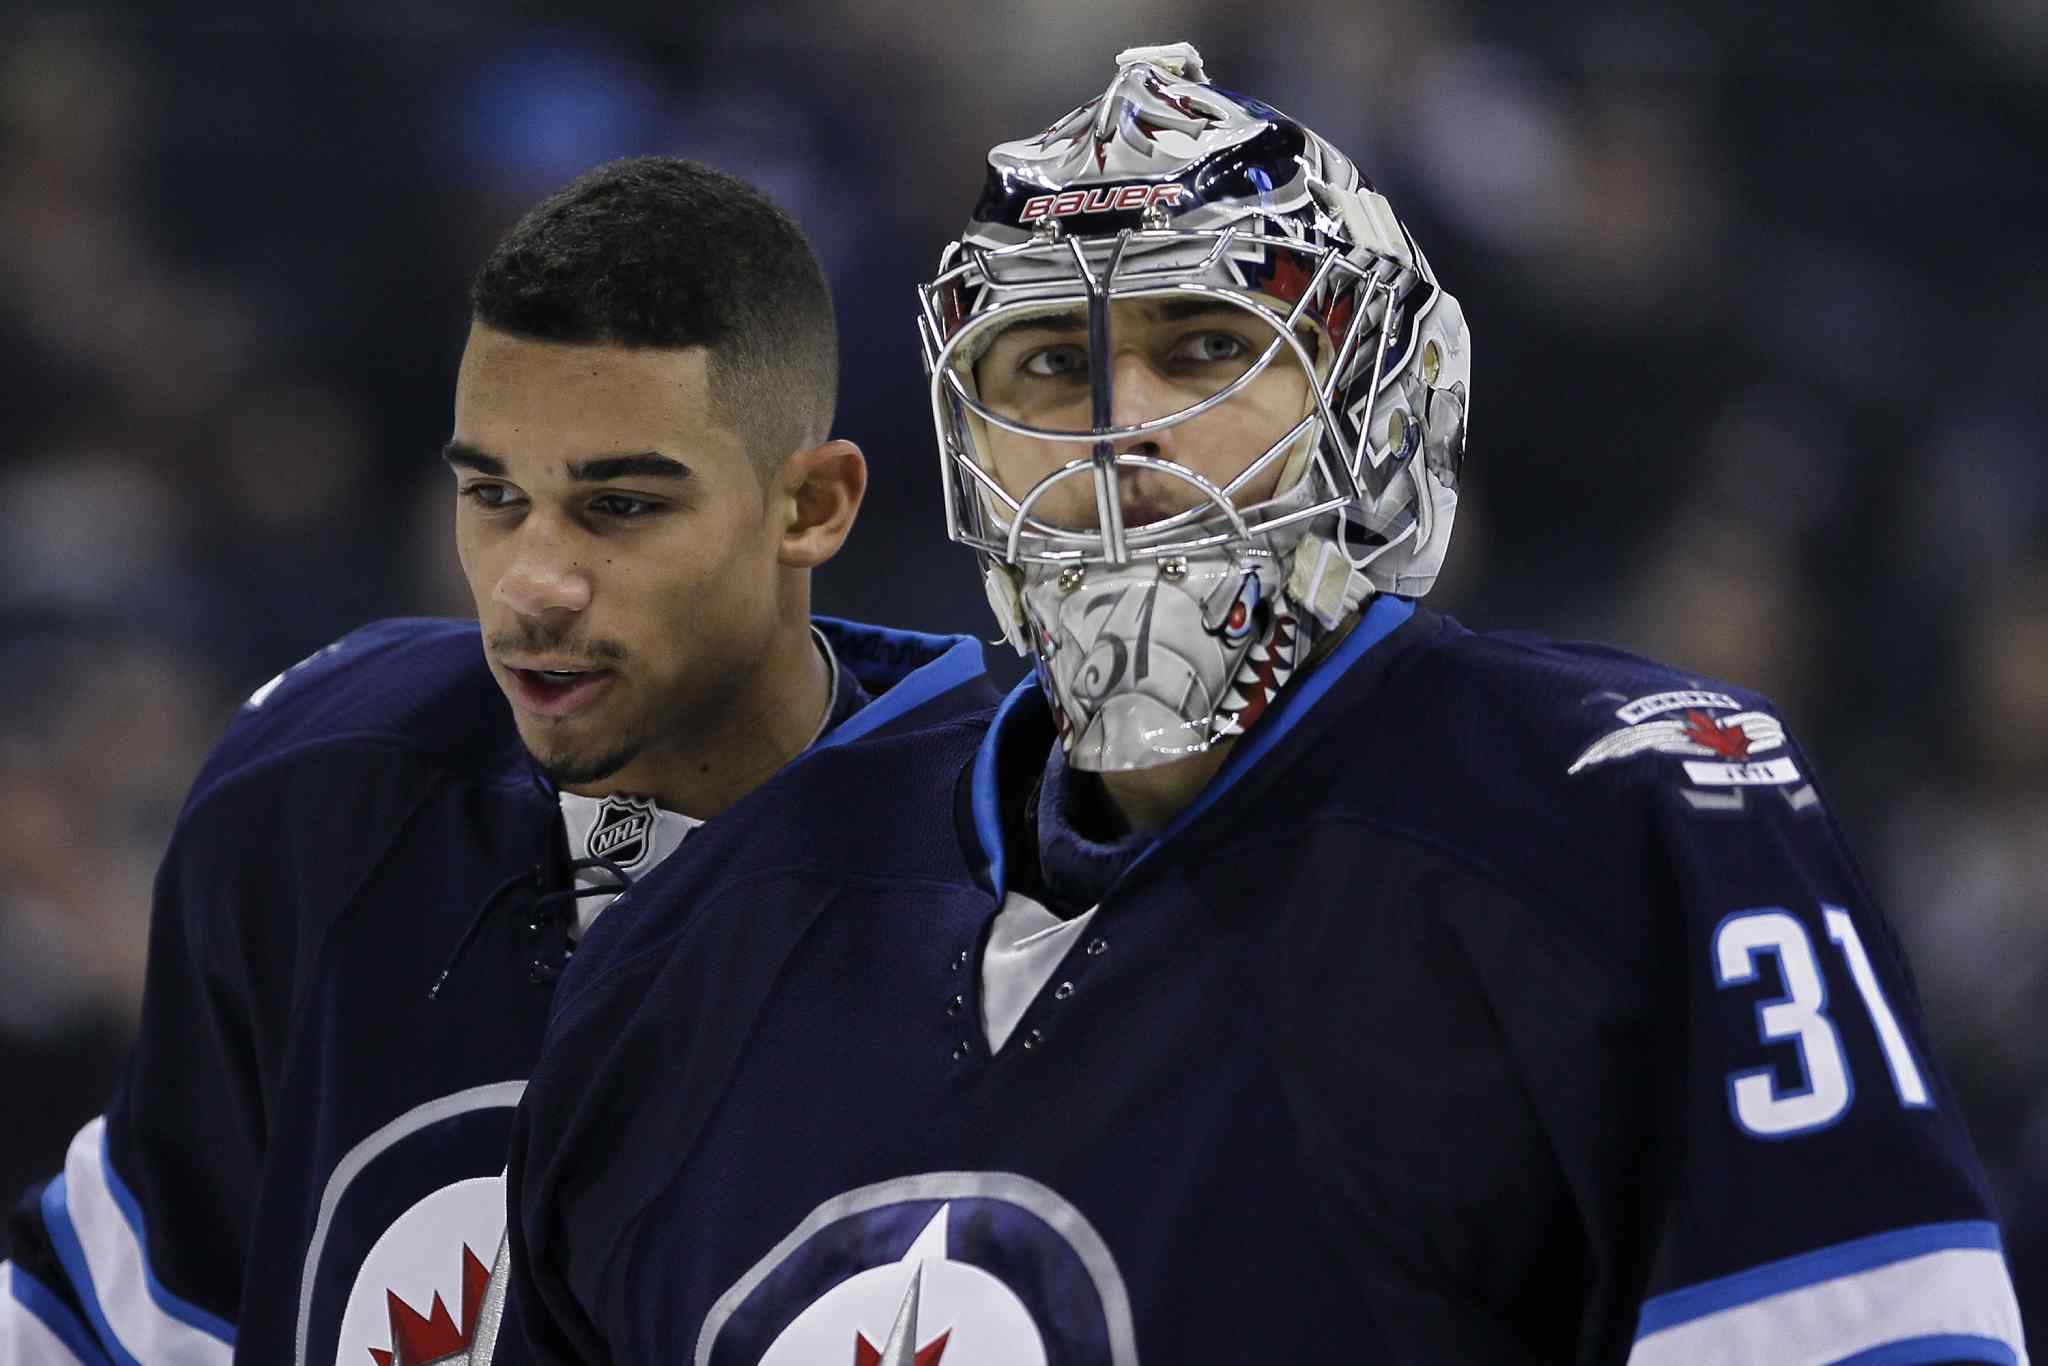 Goaltender Ondrej Pavelec and Evander Kane during the pre-game.